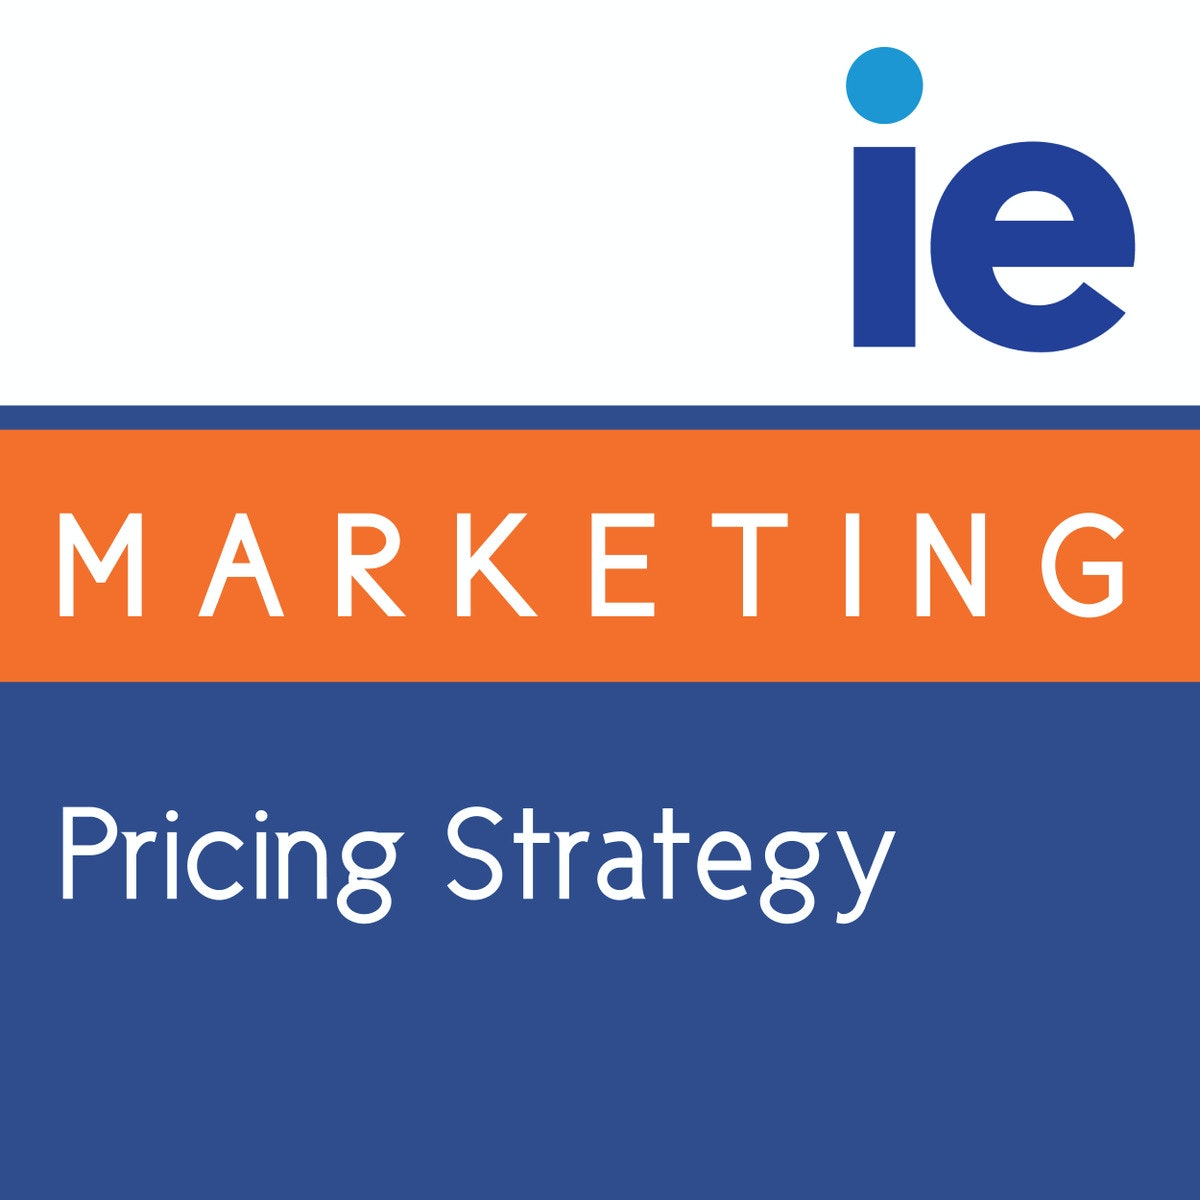 Pricing: Pricing Strategy